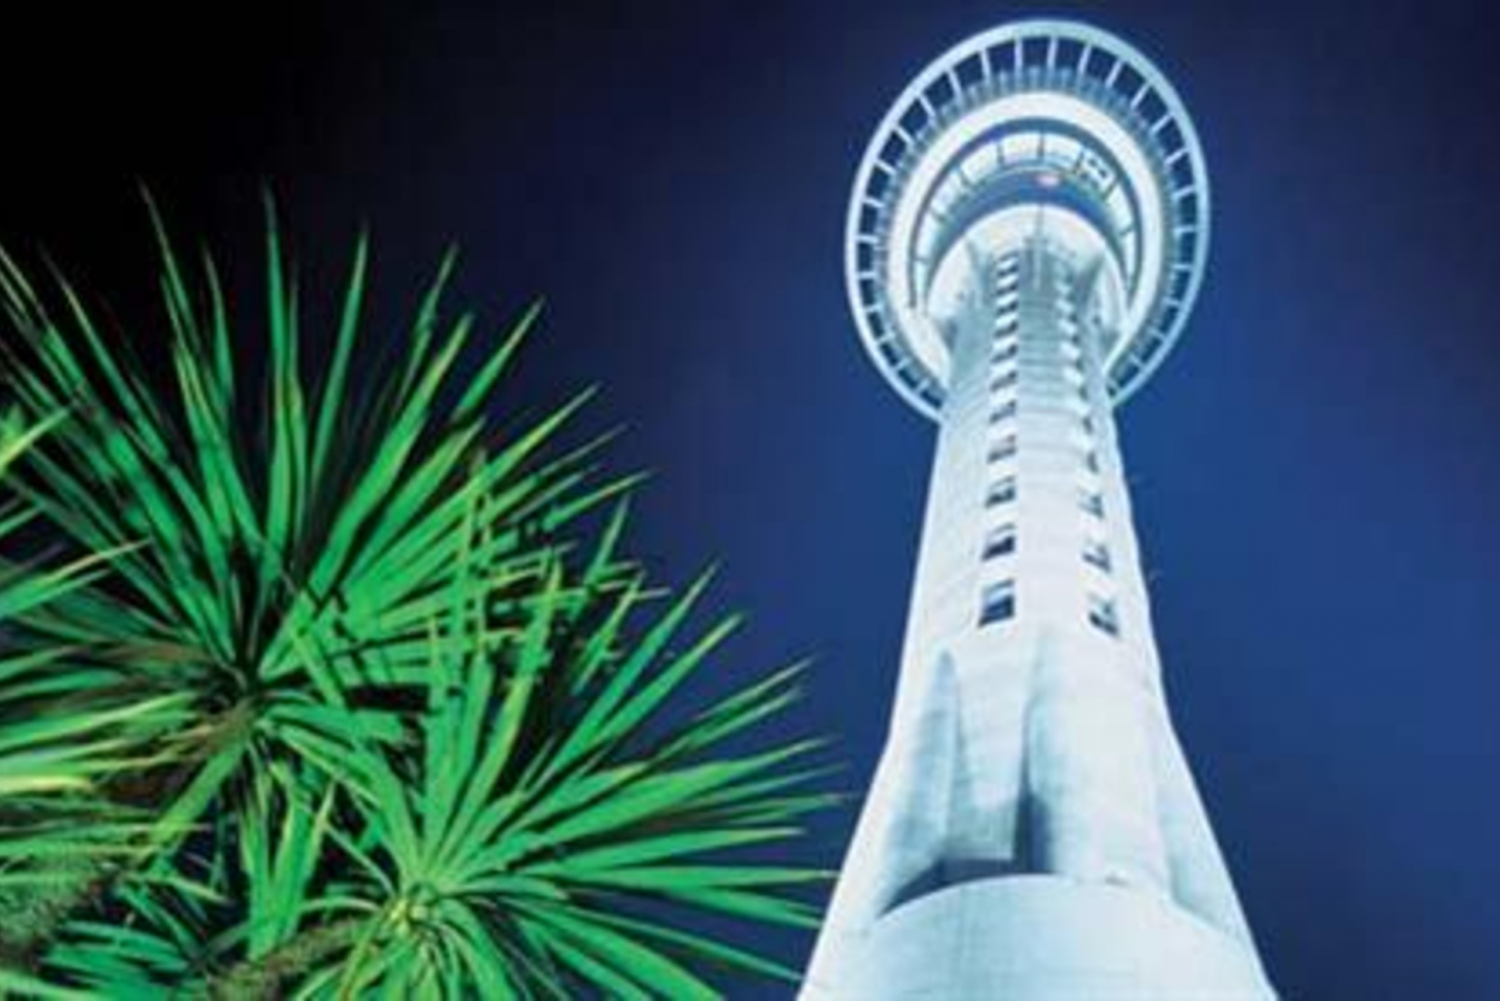 Auckland City Highlights & Sky Tower Tour